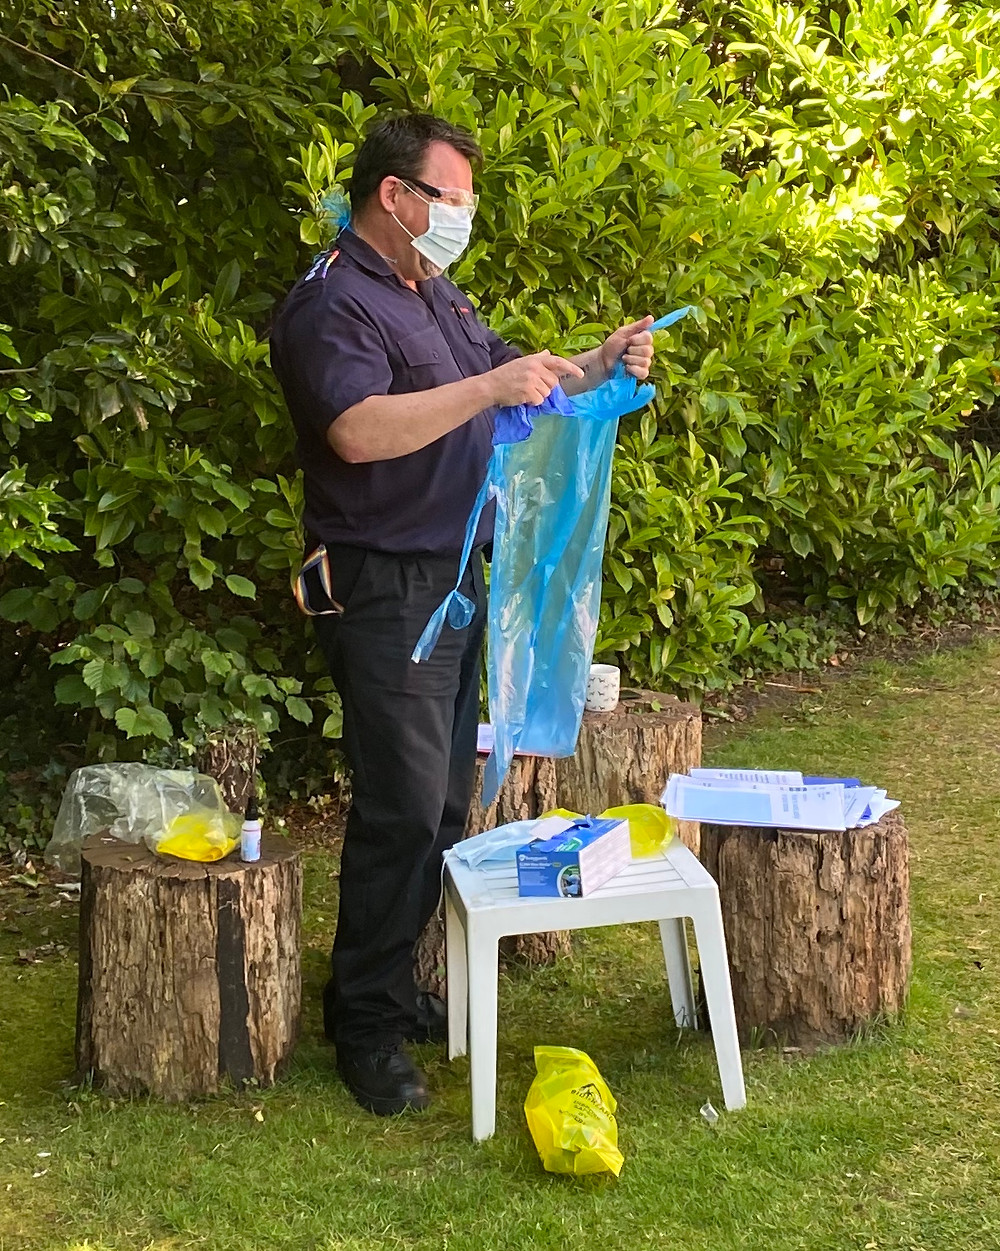 Volunteer Mick Pitney shown demonstrating personal protective equipment, mask and plastic apron